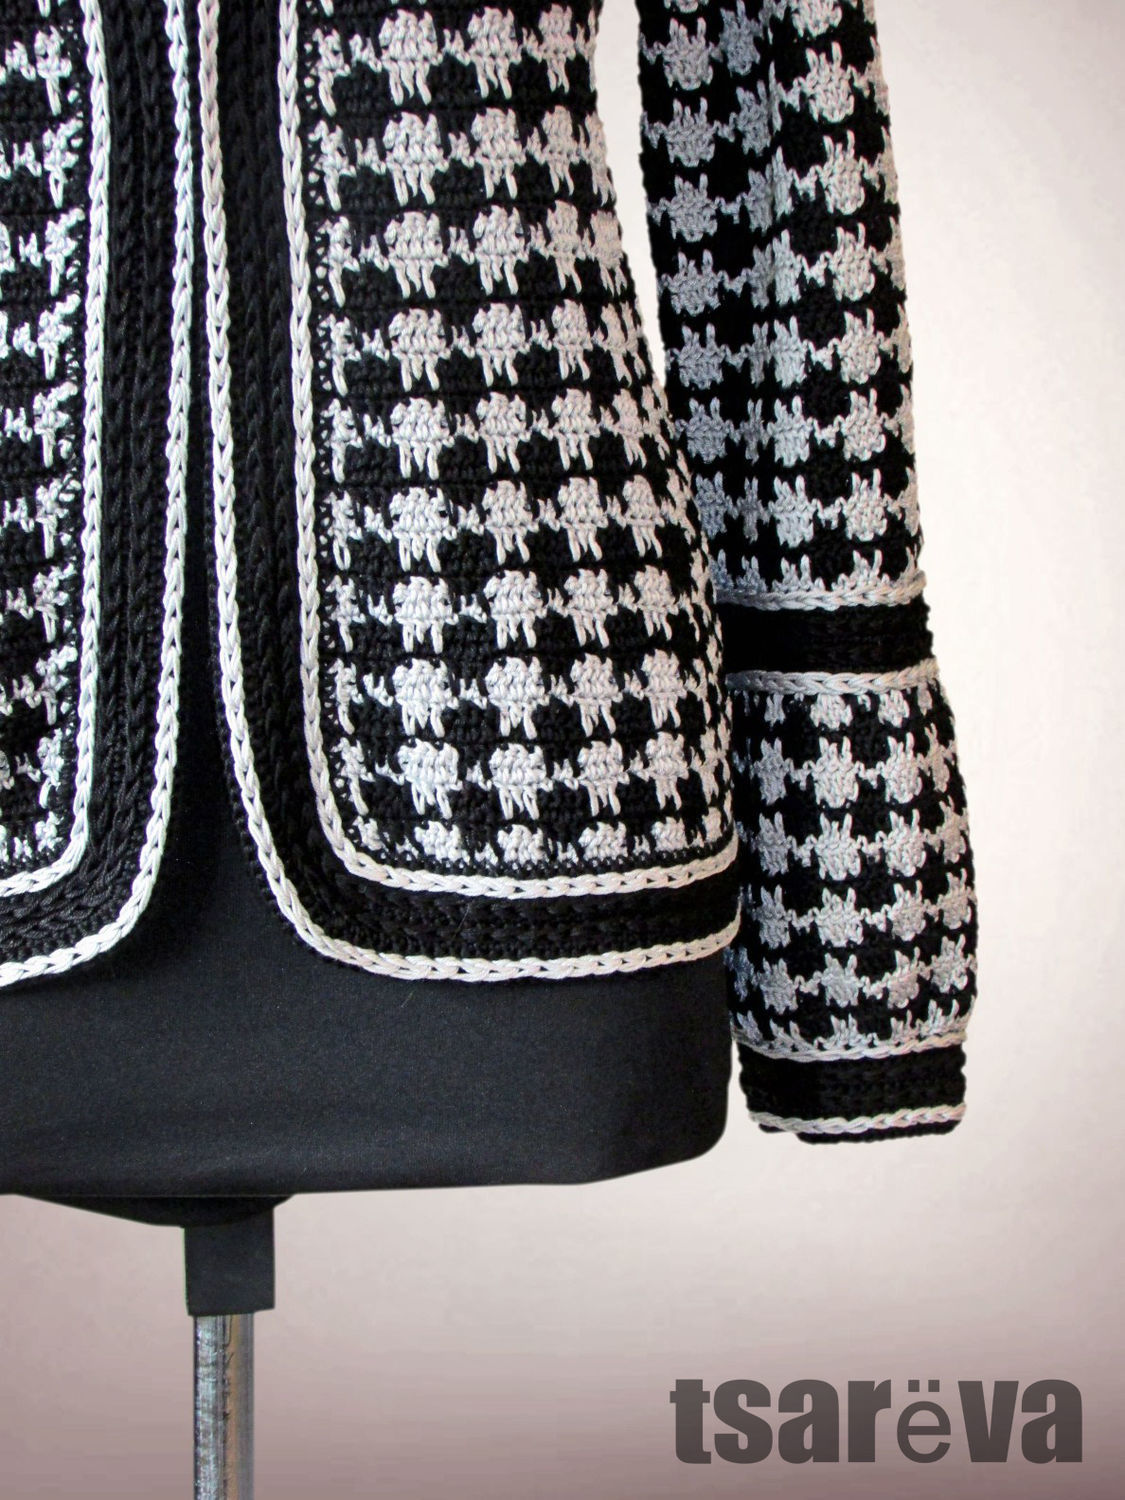 Attractive Houndstooth Pattern Crochet Inspiration - Sewing Pattern ...